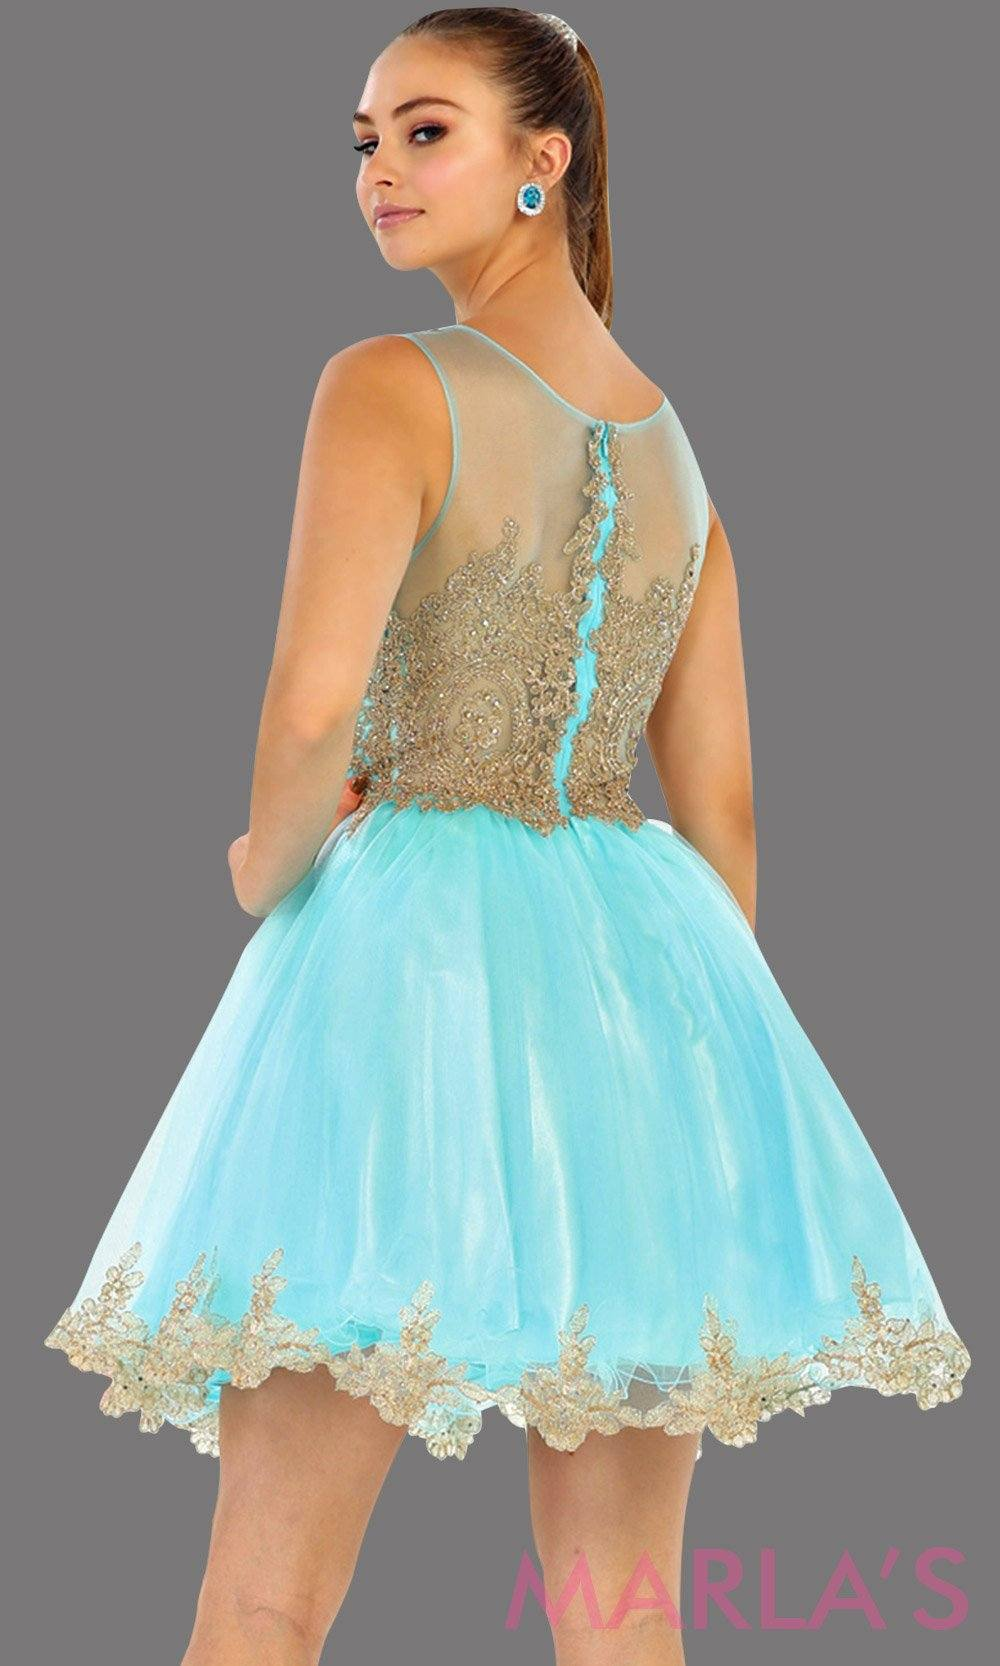 Fine Gold Prom Dress Short Crest - All Wedding Dresses ...